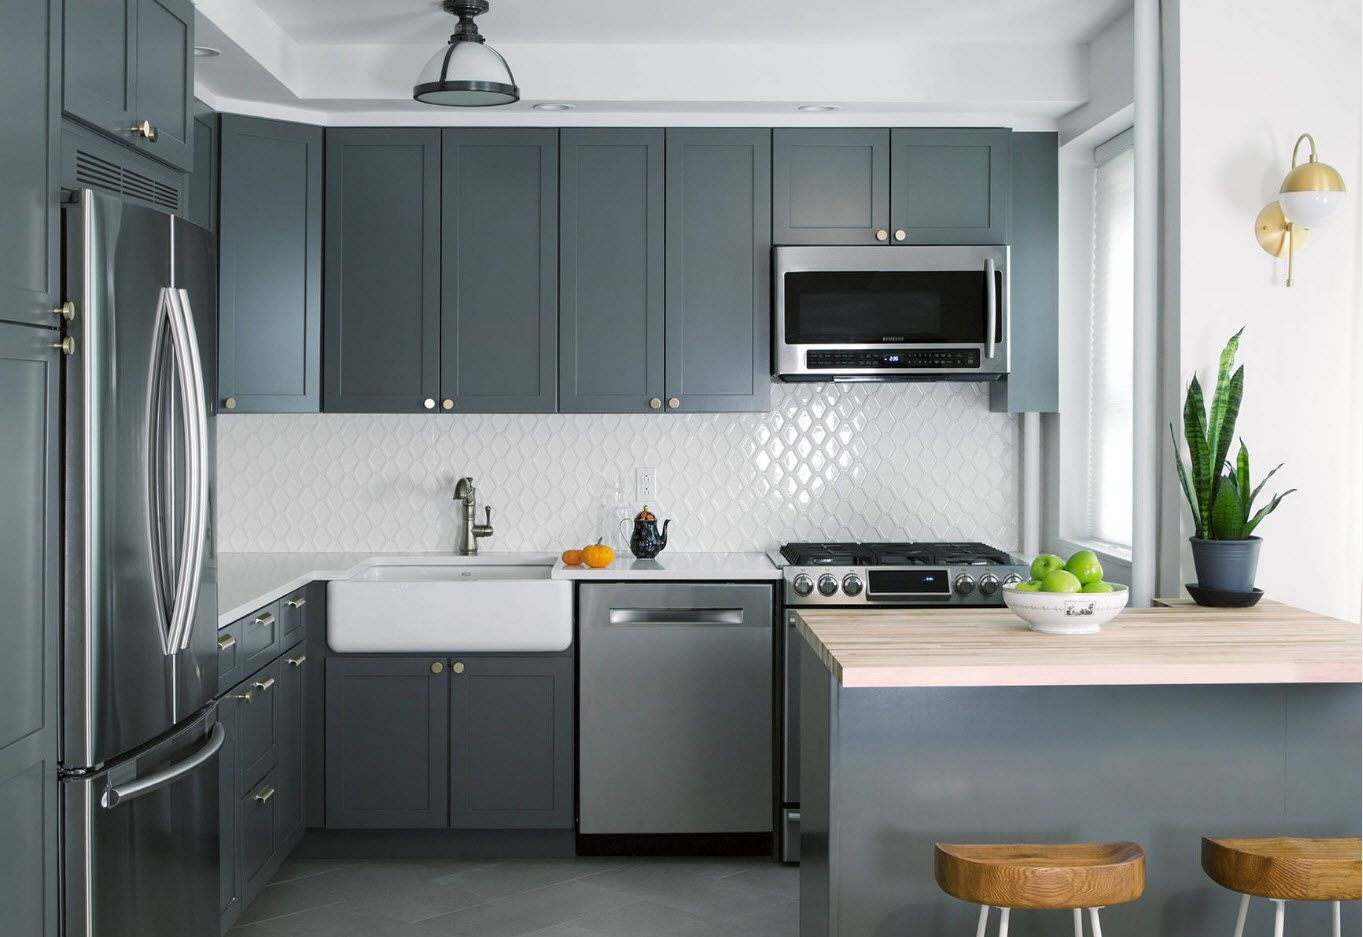 Conventional design theme for dark matted surfaces and mosaic white splashback